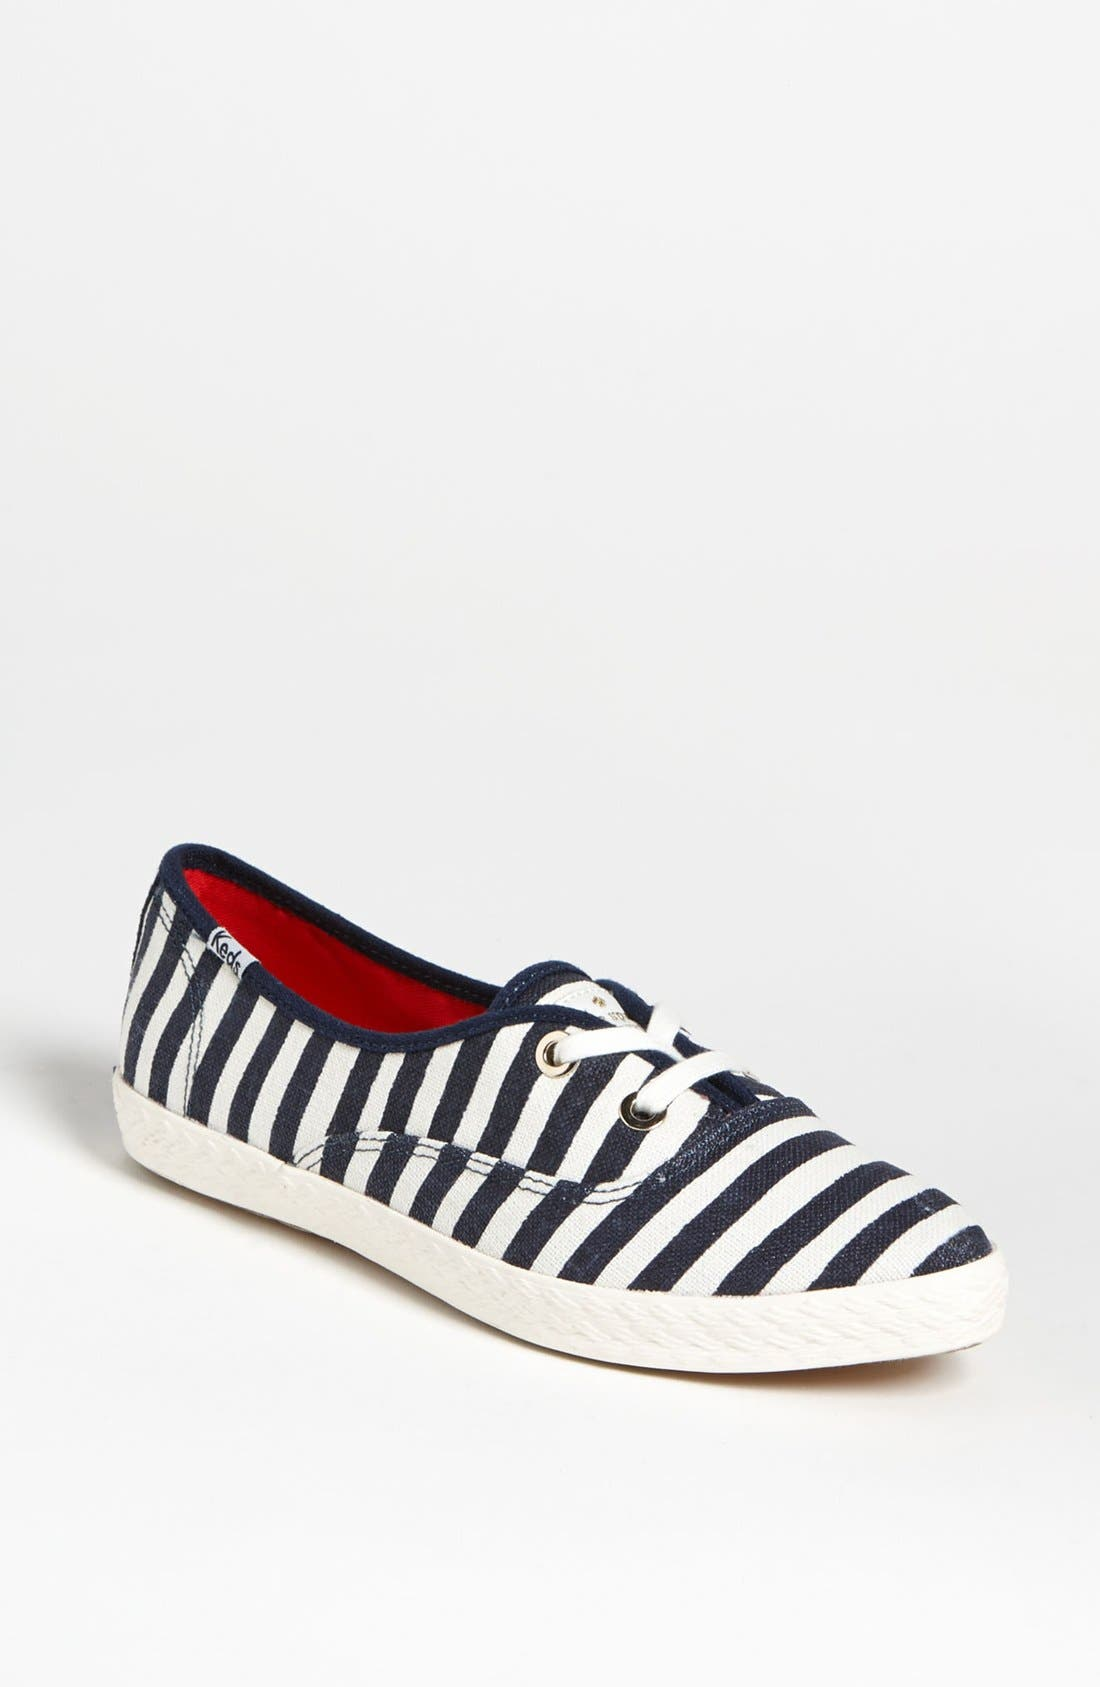 ,                             Keds<sup>®</sup> for kate spade new york 'pointer' sneaker,                             Main thumbnail 1, color,                             473